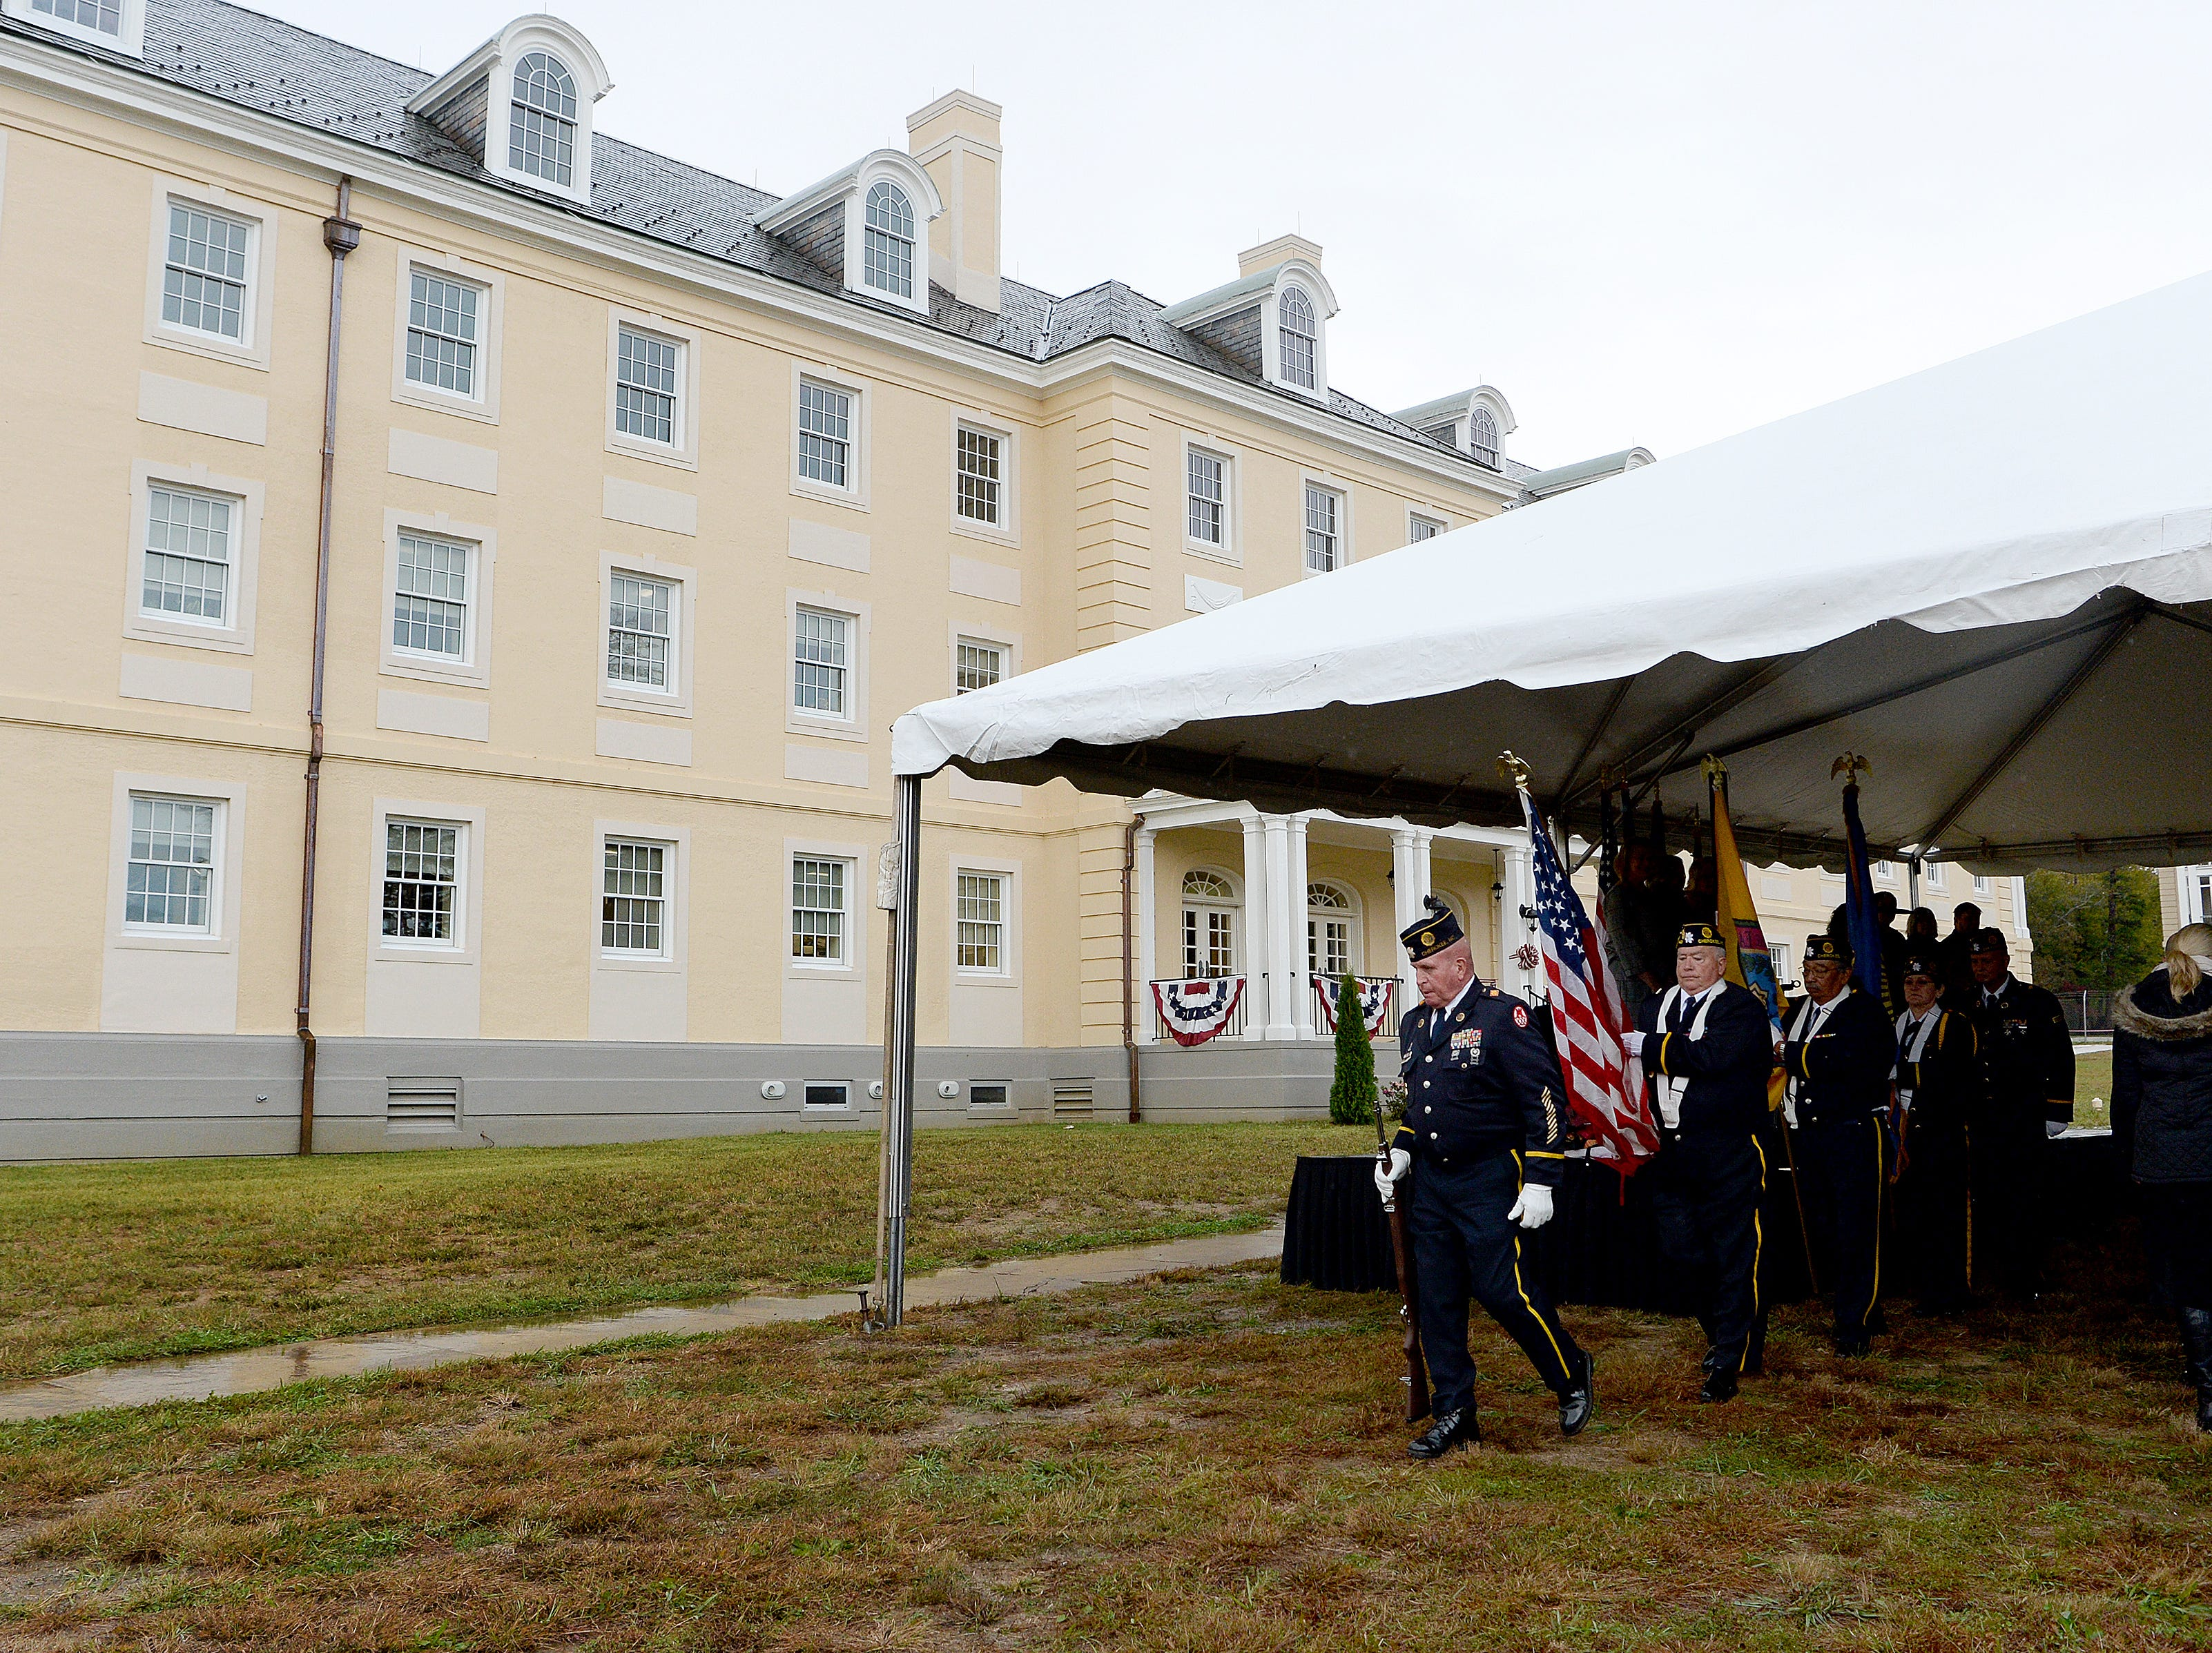 Members of the American Legion Steve Youngdeer Post 143 exit the event tent after presenting the colors during a ceremony celebrating the opening of the Veterans Hope and Recovery Center on the campus of the Charles George VA Medical Center on Oct. 26, 2018.